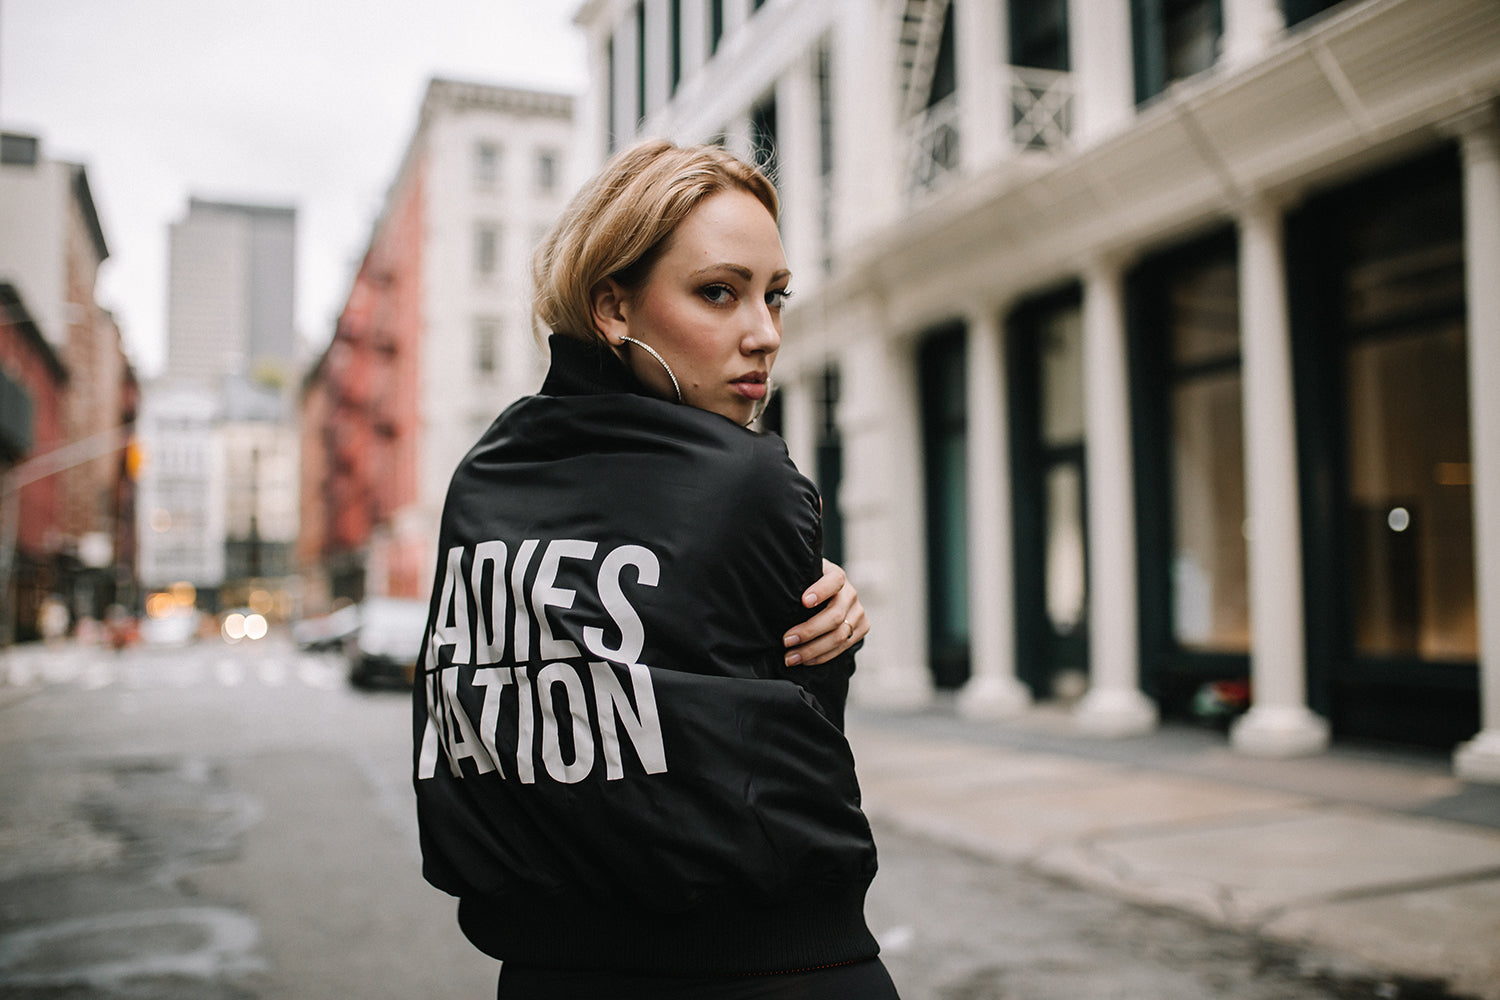 THE BOSS LADY BOMBER - Shop for THE BOSS LADY BOMBER - LADIES NATION